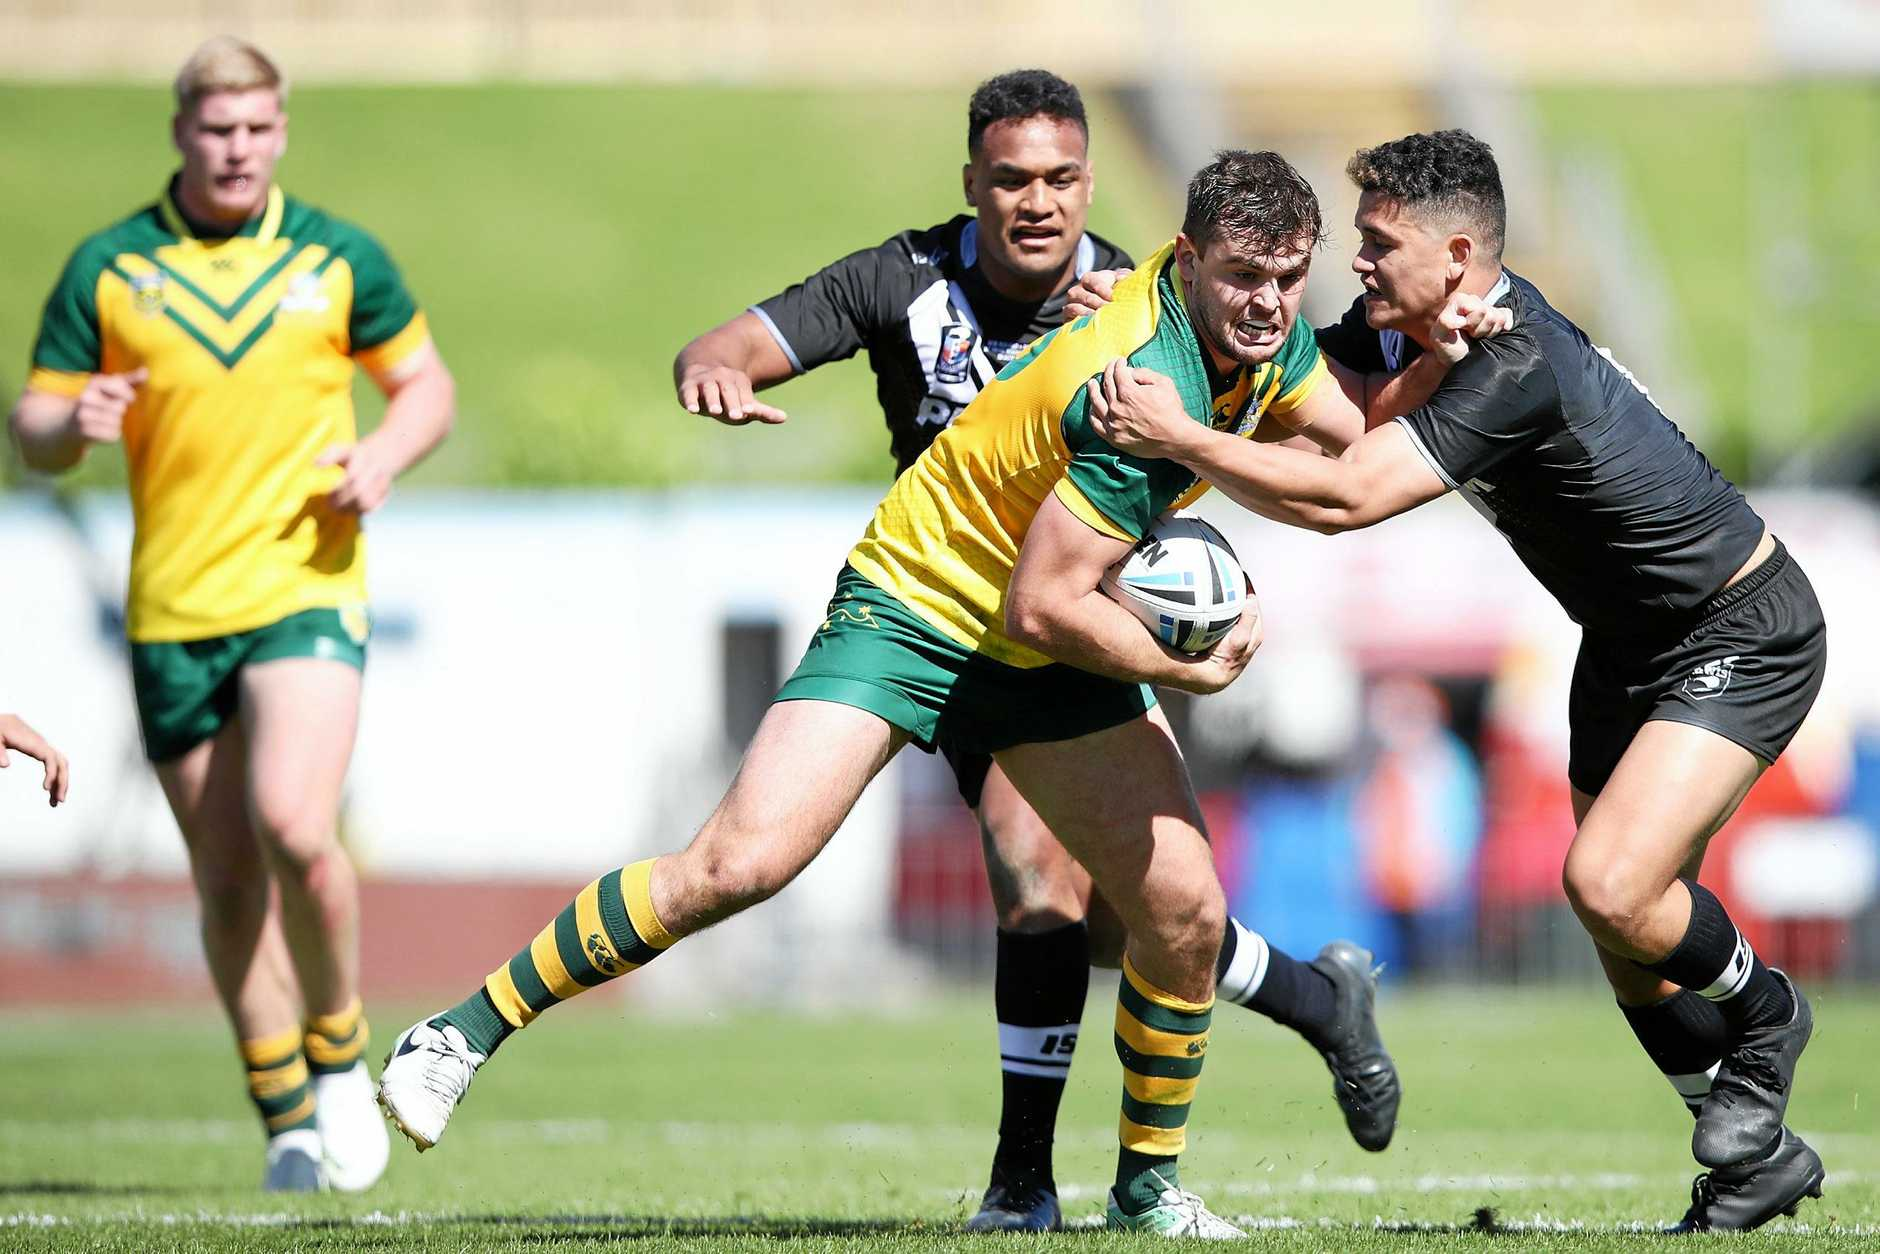 REP PLAYER: Sunshine Coast's Louis Geraghty played for the Junior Kangaroos against the Junior Kiwis in Auckland in October.